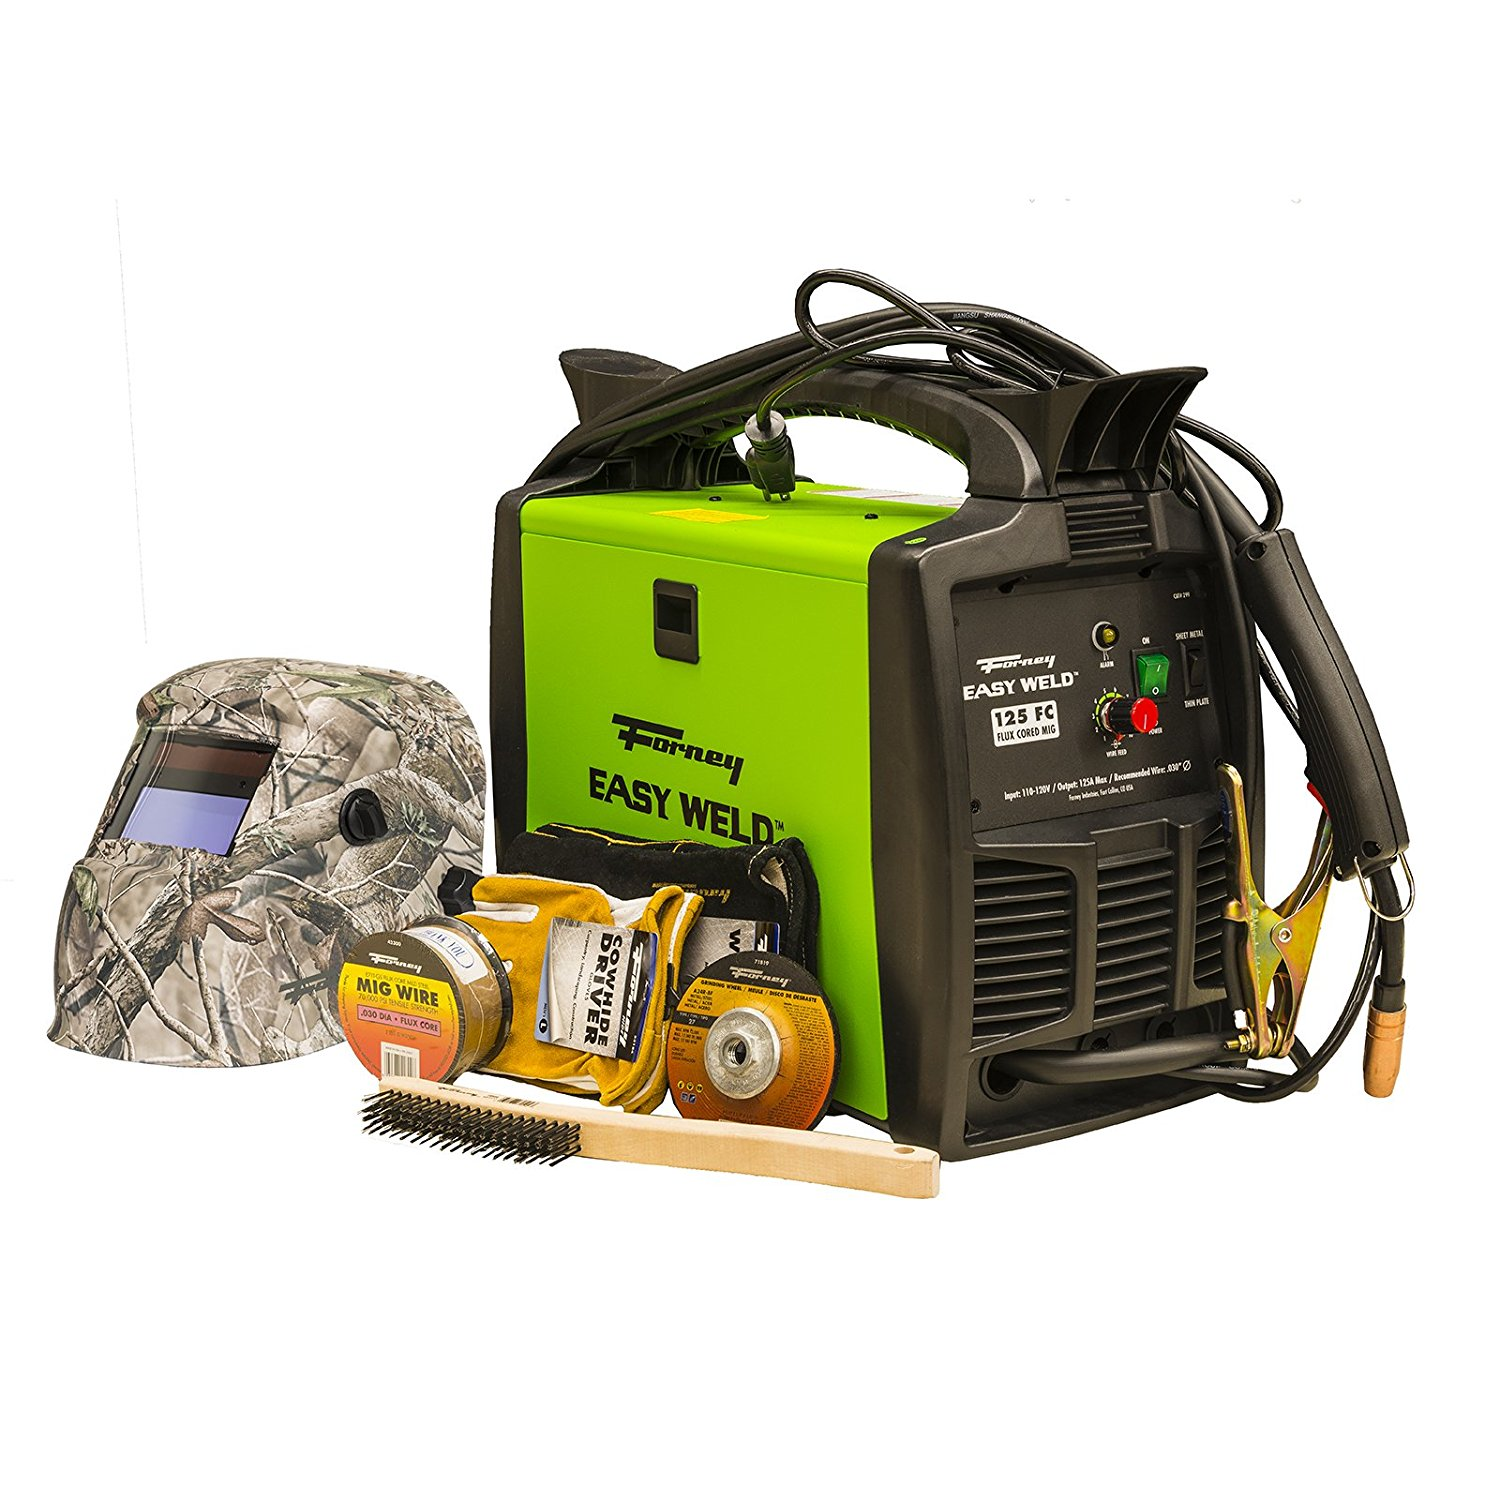 best mig welder review forney 29901, lincoln electric k2185 1 weldersbest mig welder review \u2013 forney 29901, lincoln electric k2185 1, lotos mig140